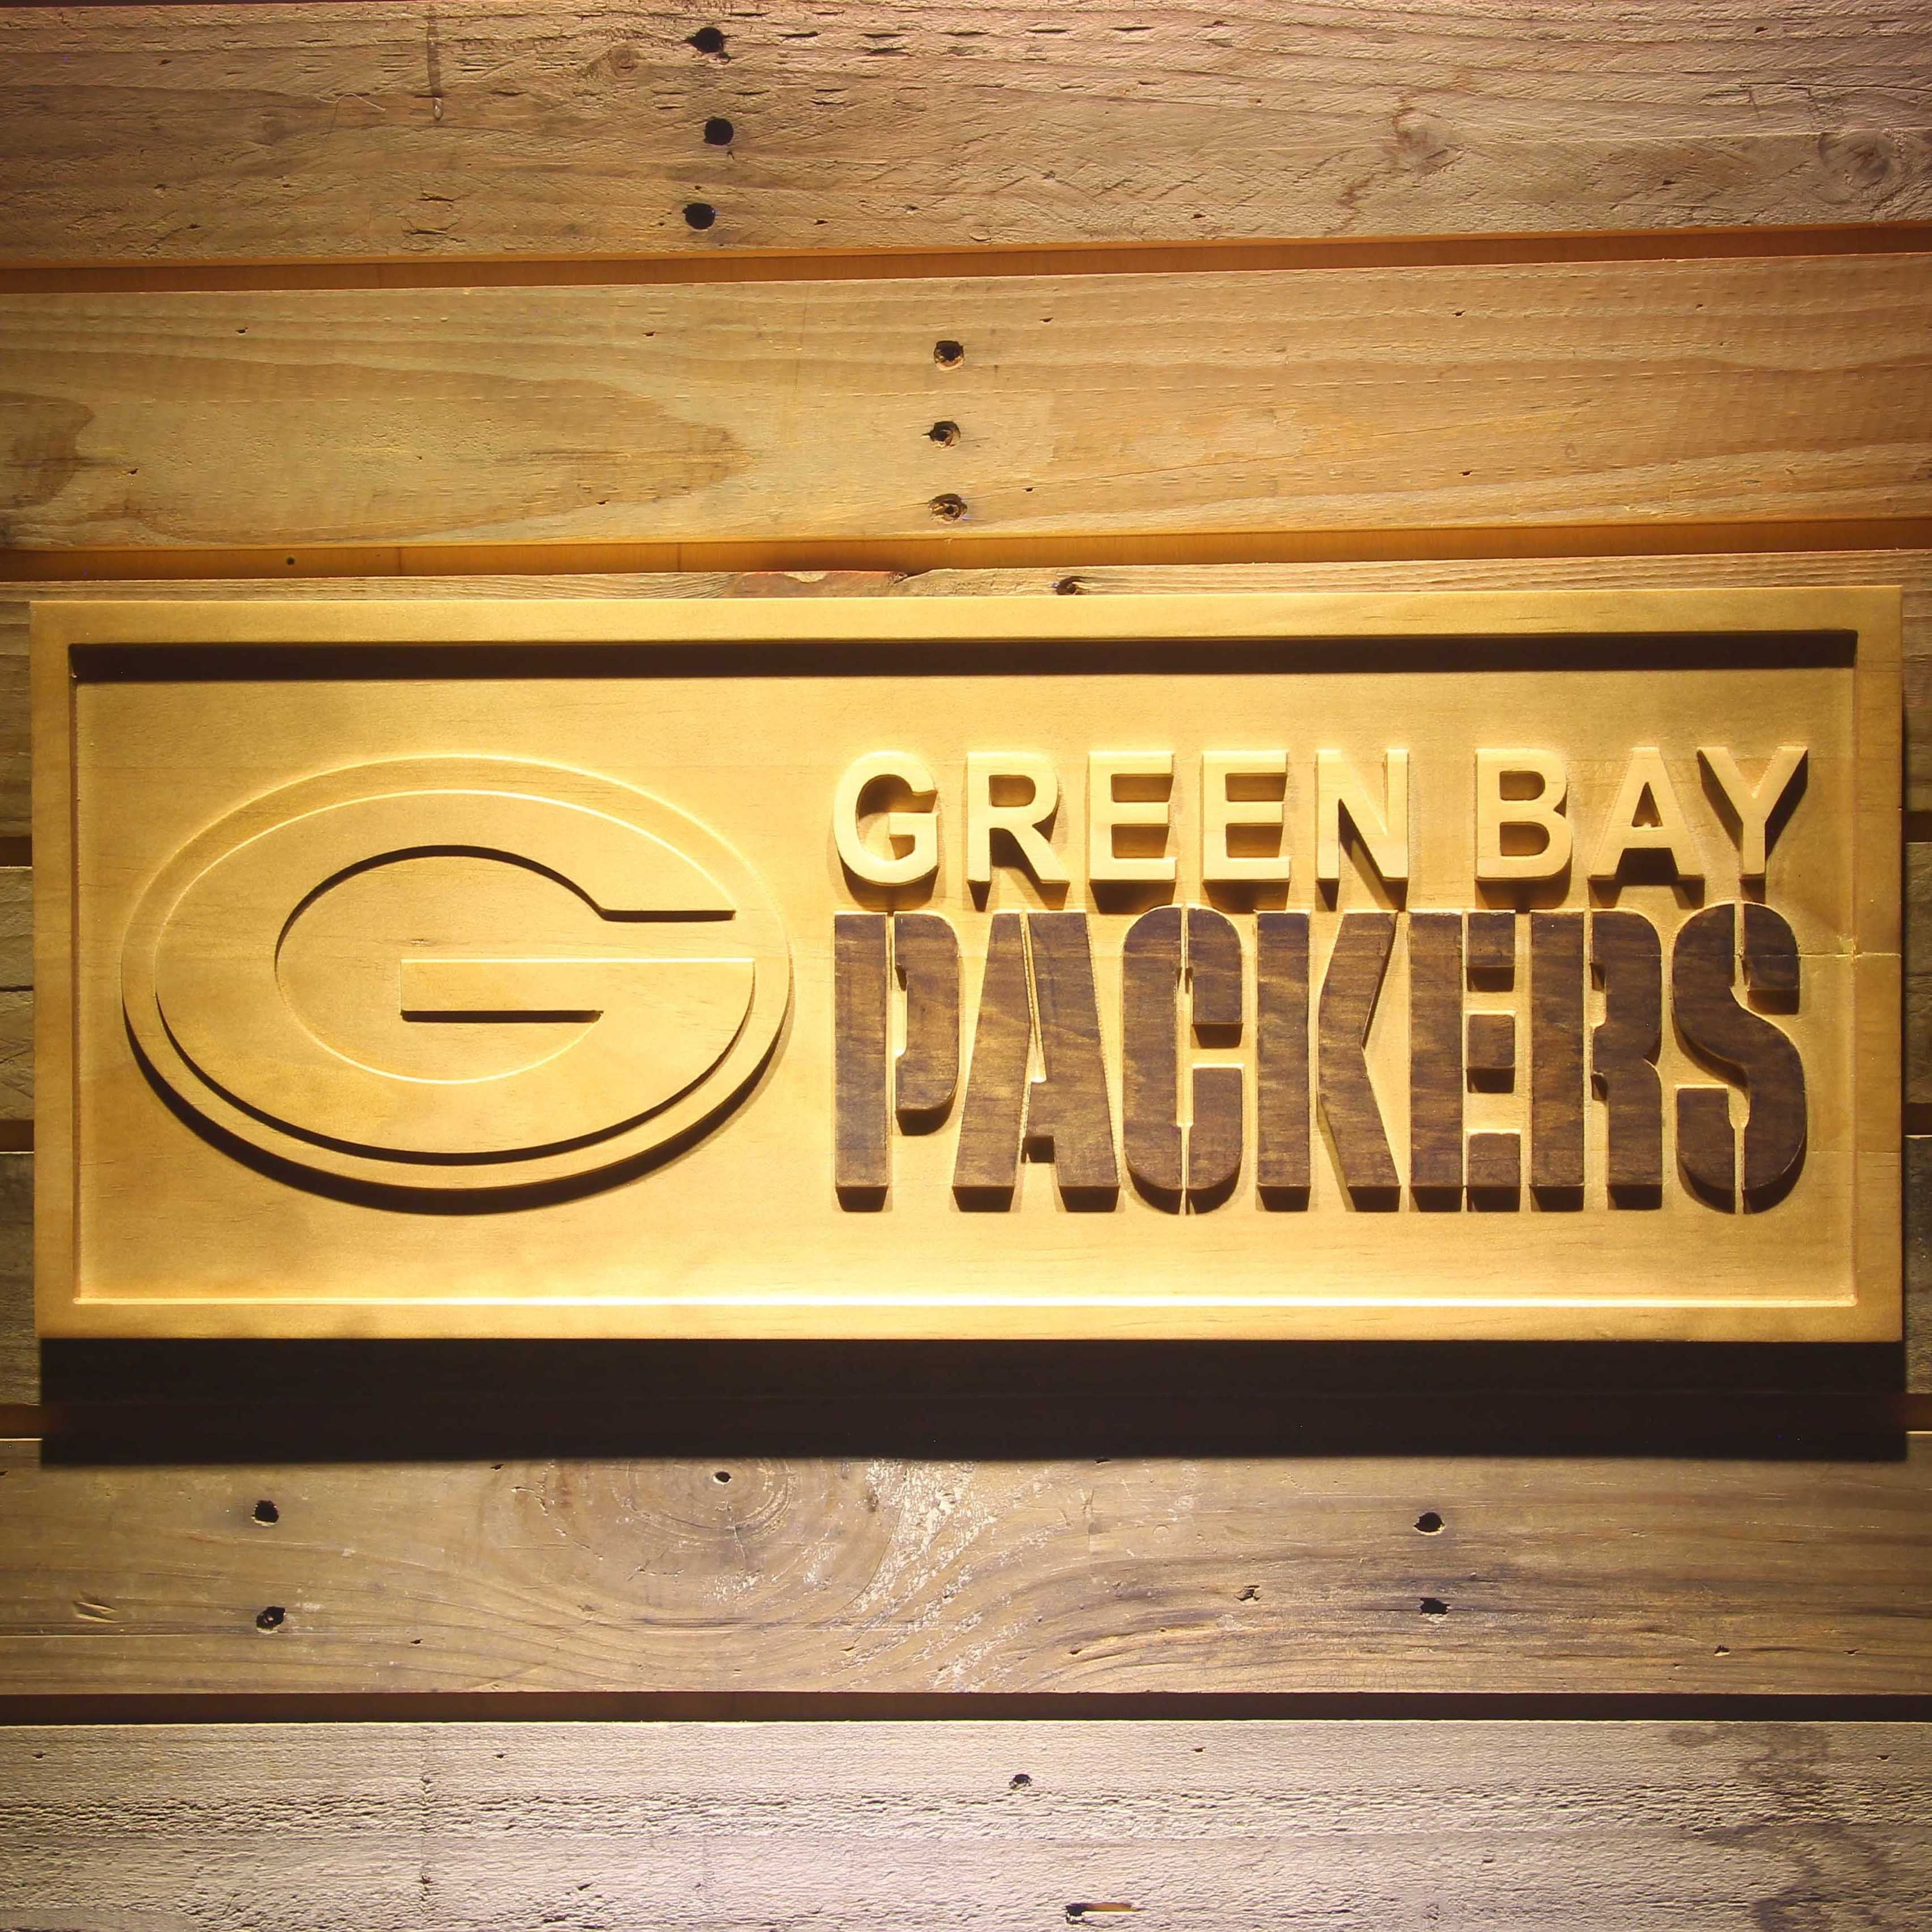 Green Bay Packers 3d Wooden Engraved Nfl Team Logo Wooden Signs Rustic Wooden Sign Wood